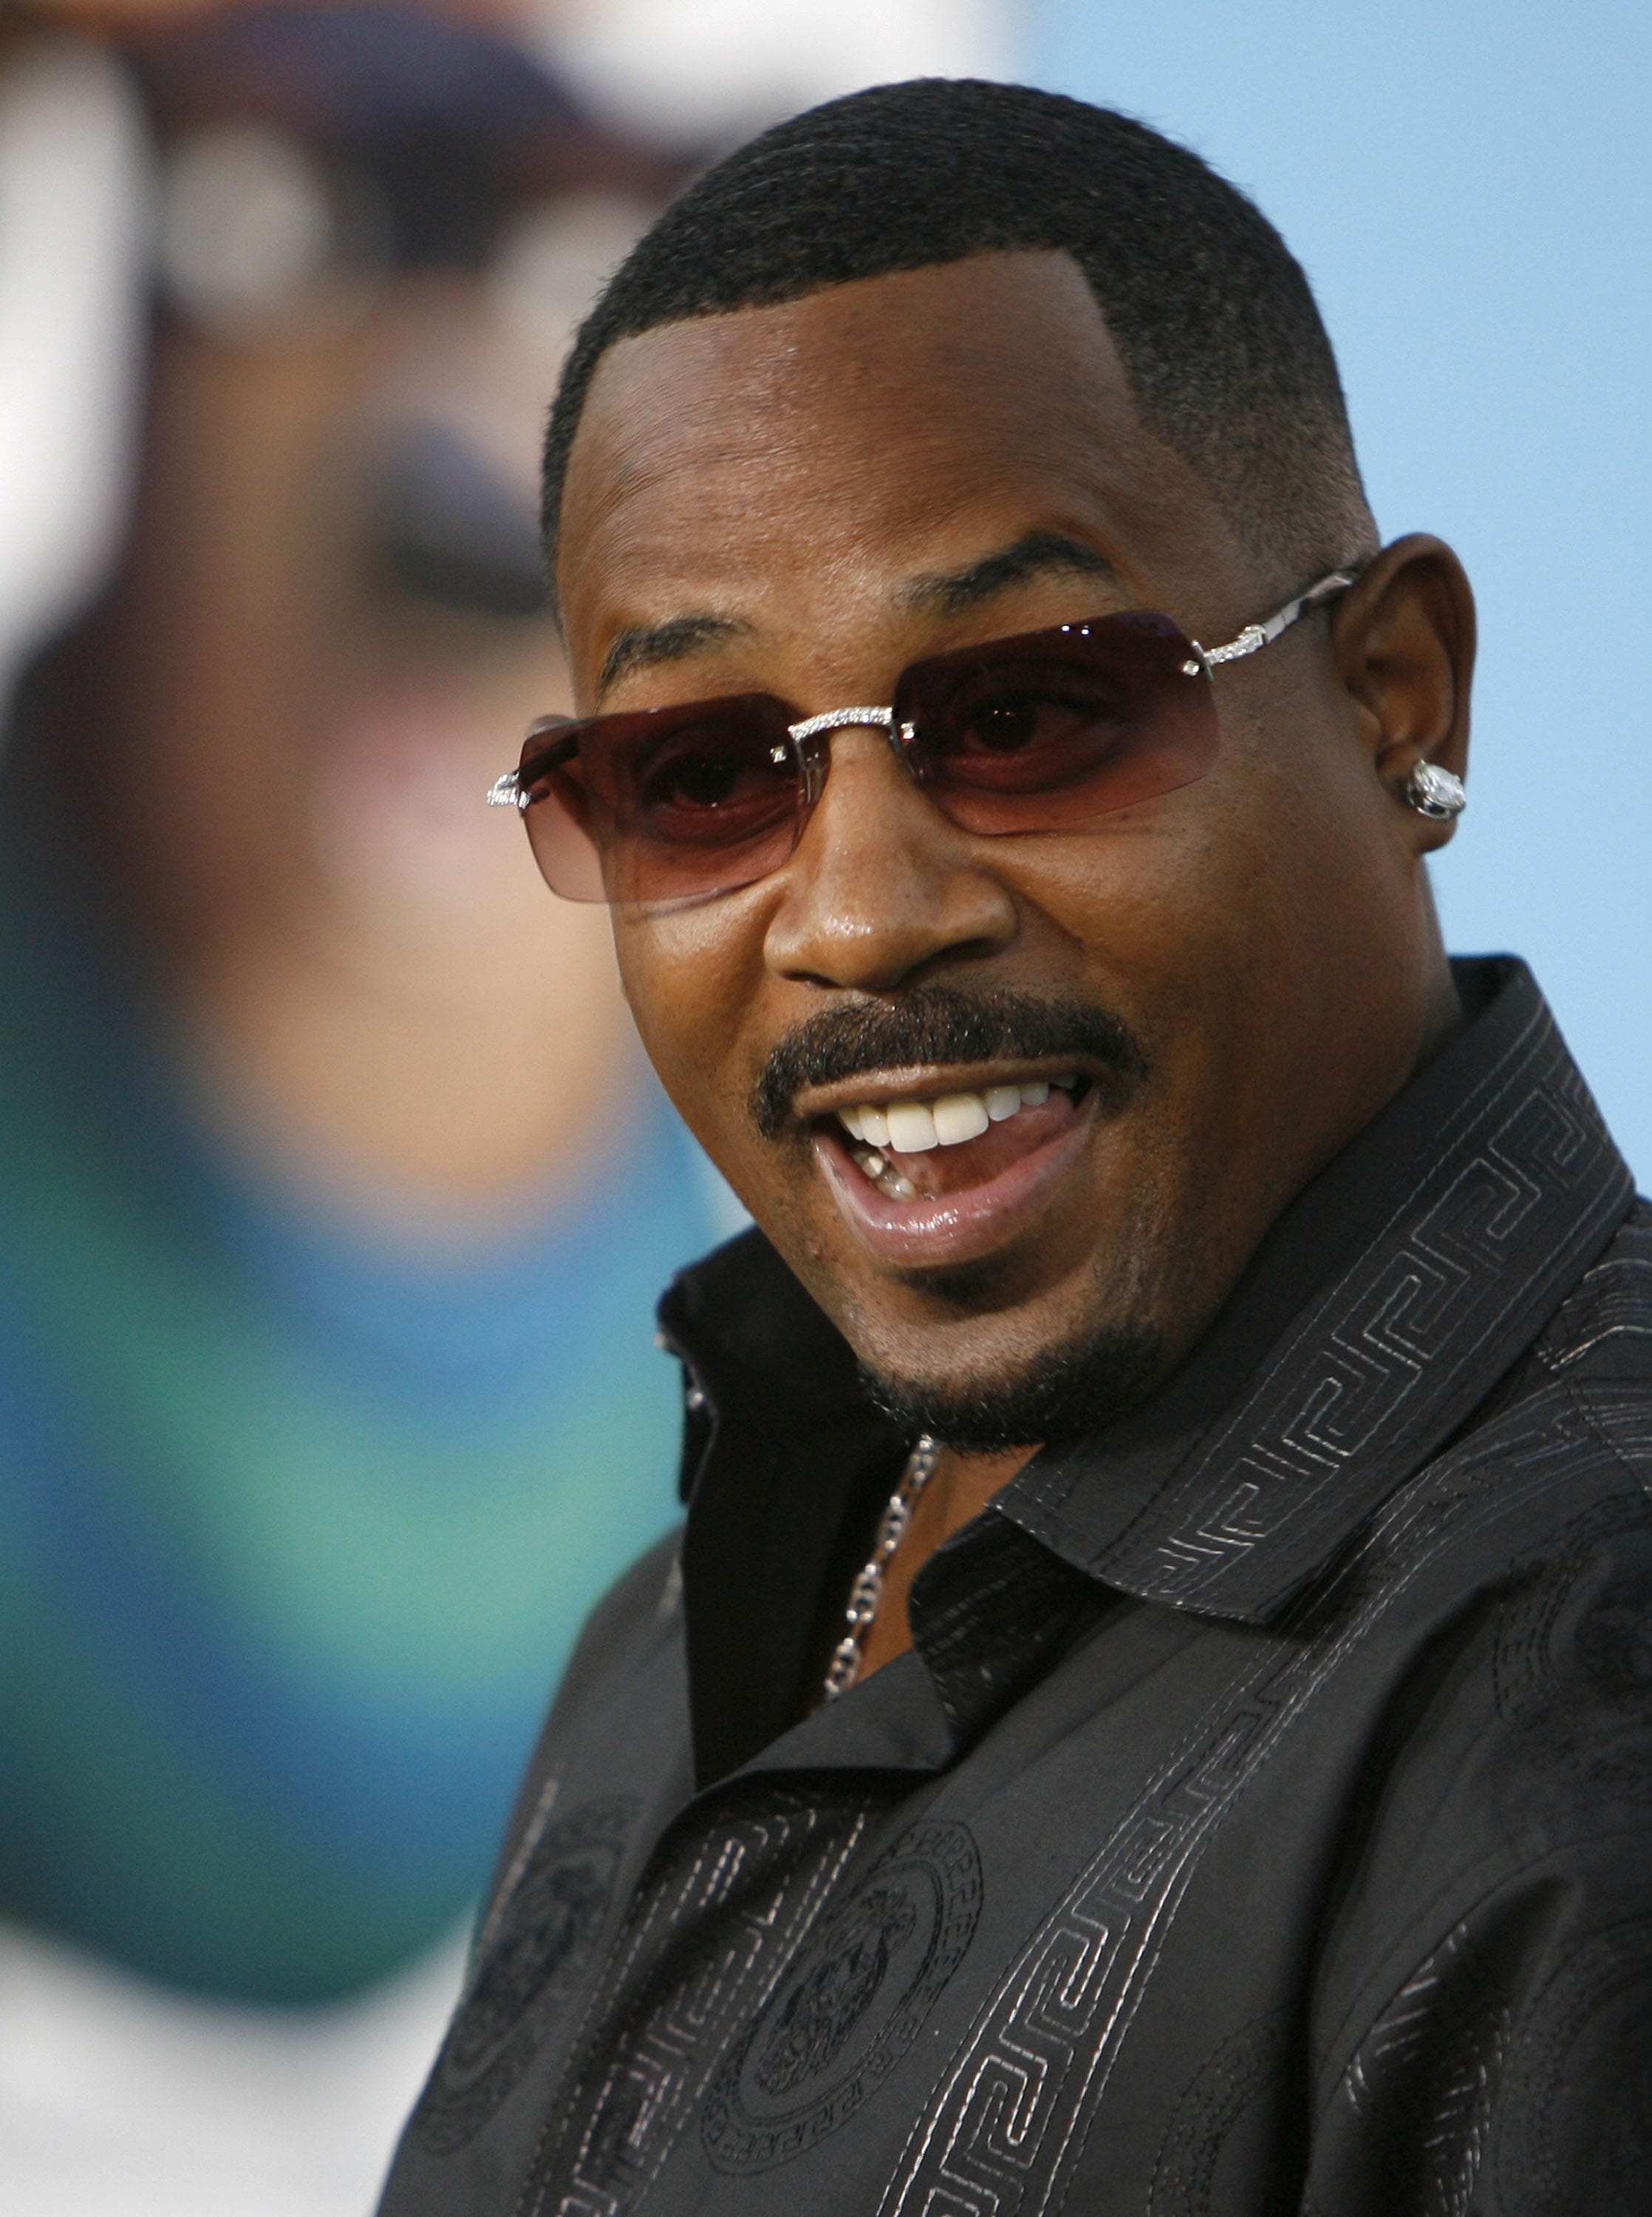 Martin Lawrence HQ wallpapers